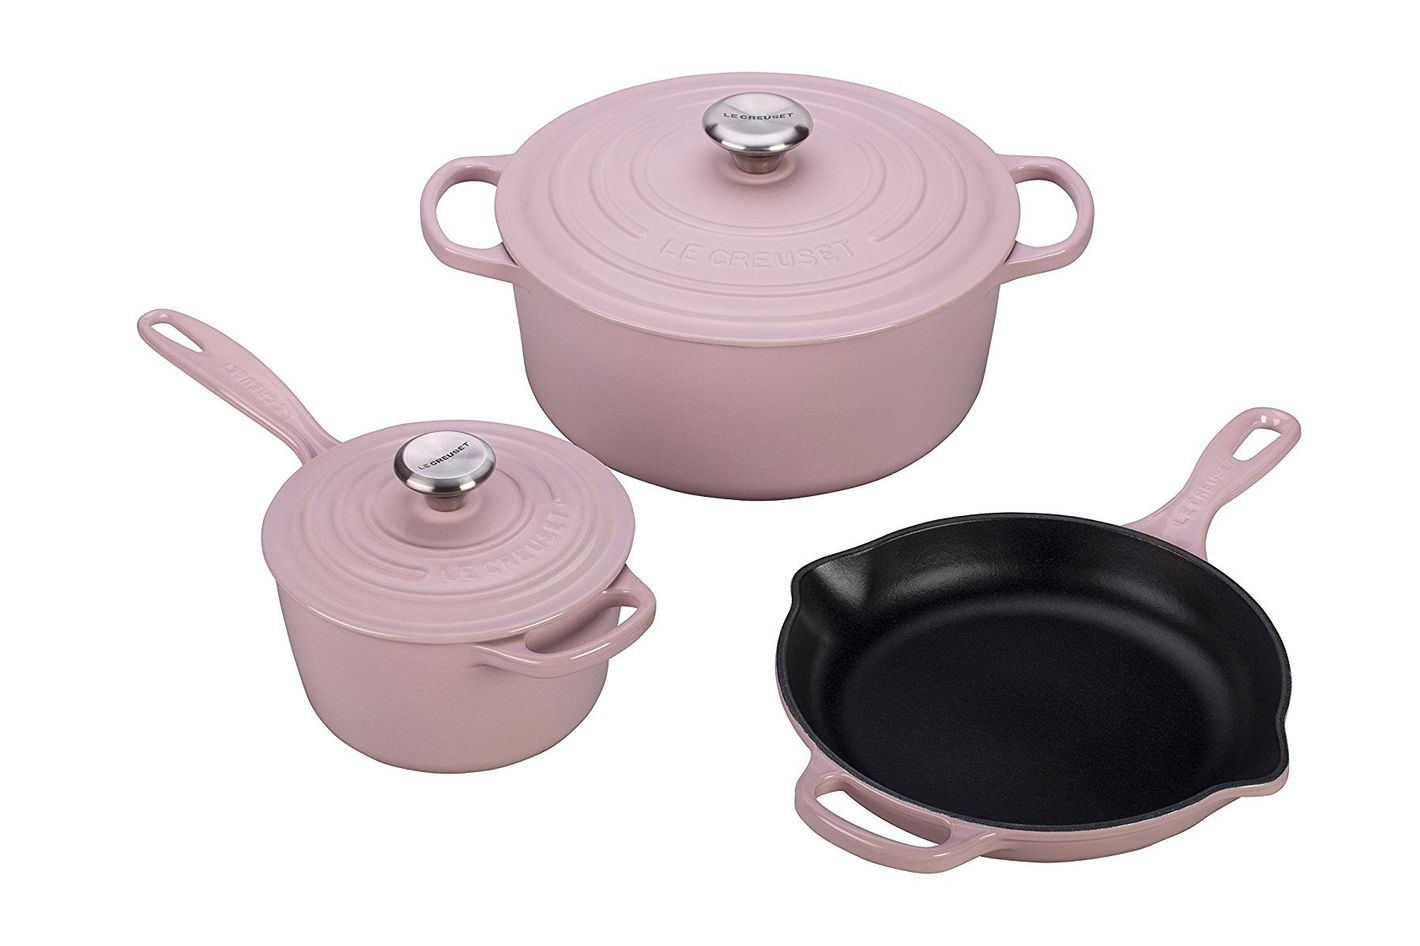 Le Creuset of America 5 Piece Signature Enameled Cast Iron Cookware Set